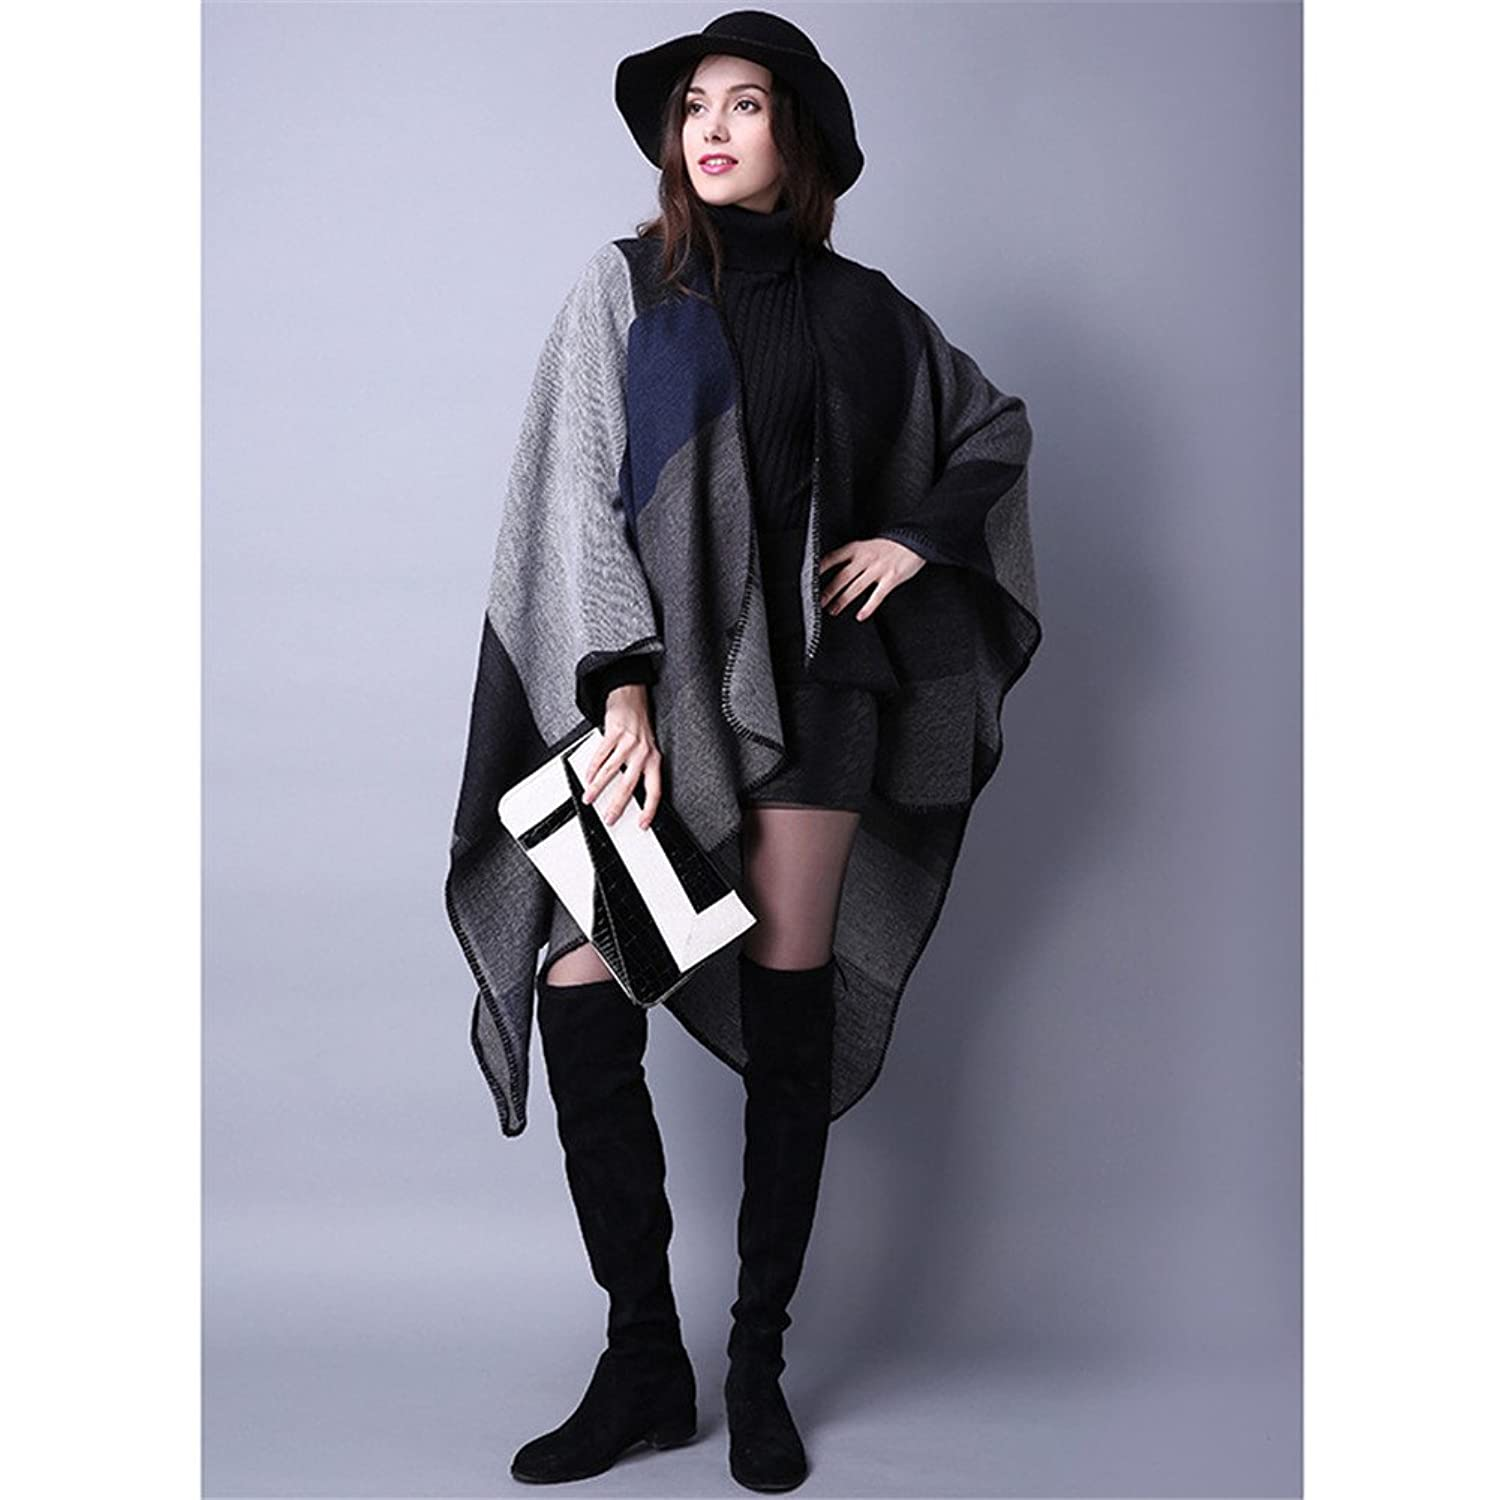 8haohuo Women Winter Knitted Cashmere Poncho Capes Shawl Cardigans Sweater Coat